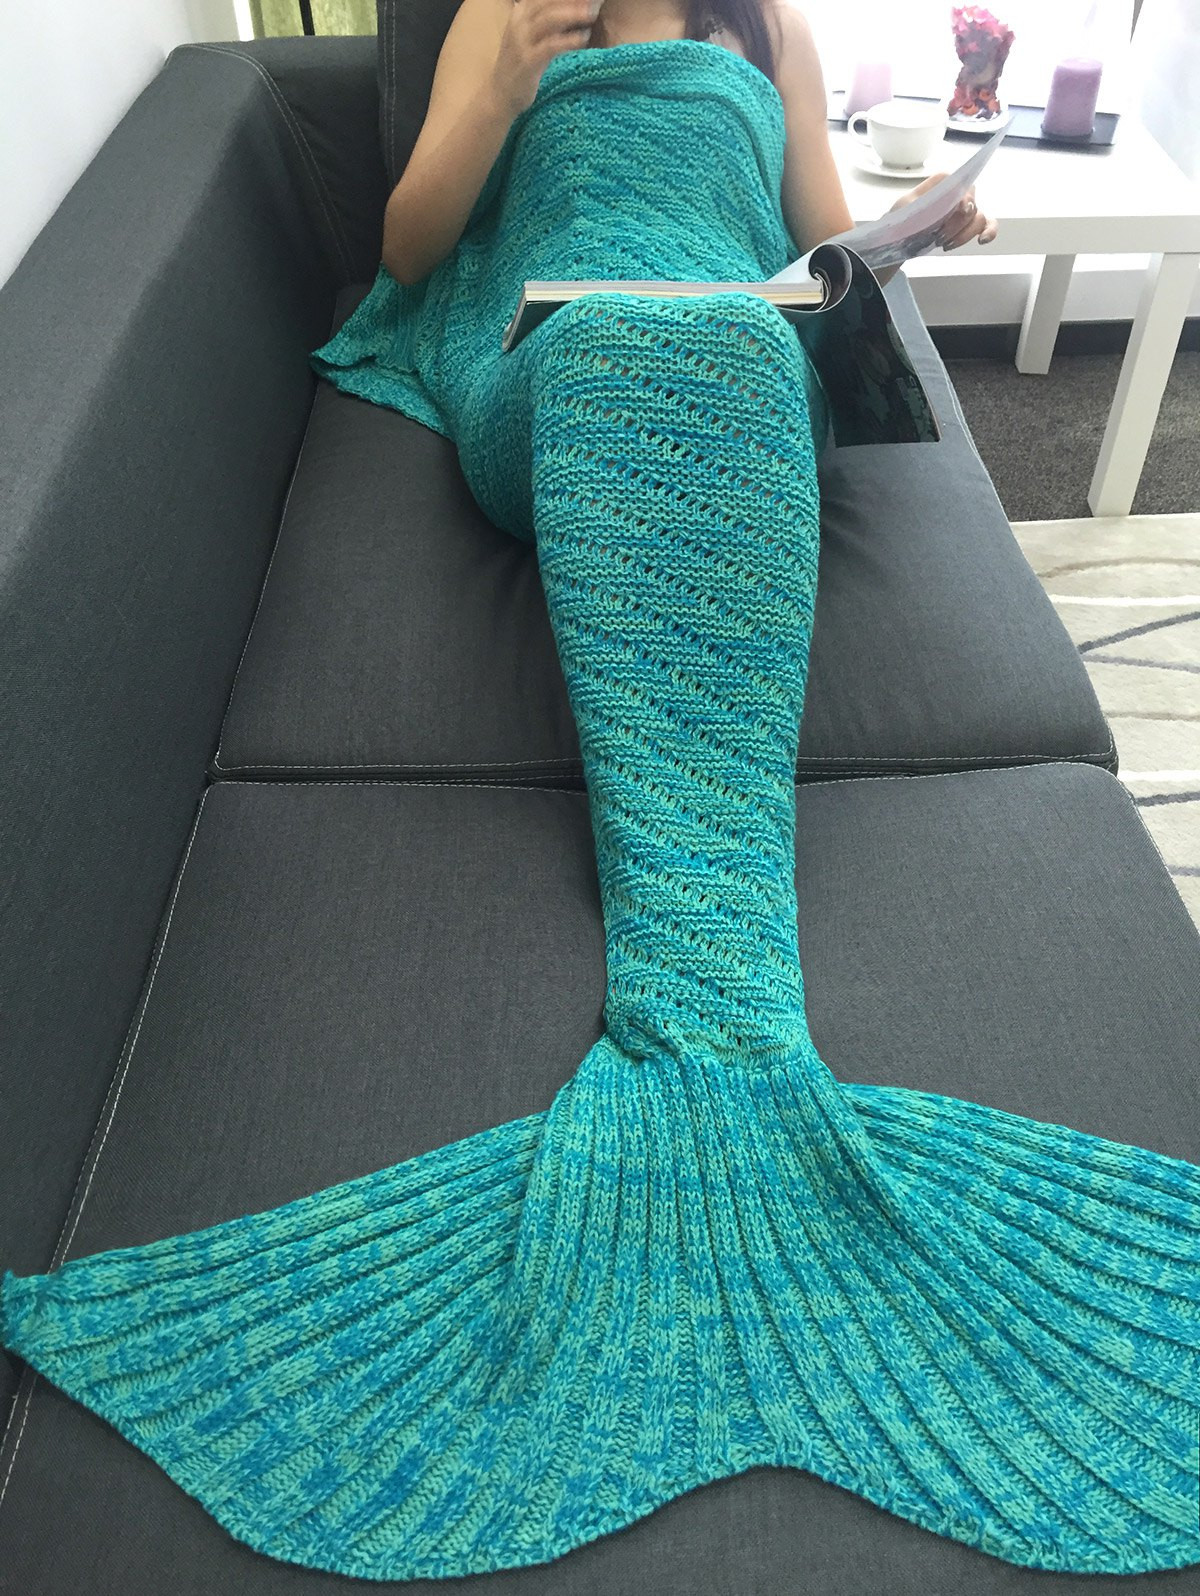 Inspirational Blankets & Throws Knitted Mermaid Blanket Of Great 41 Images Knitted Mermaid Blanket